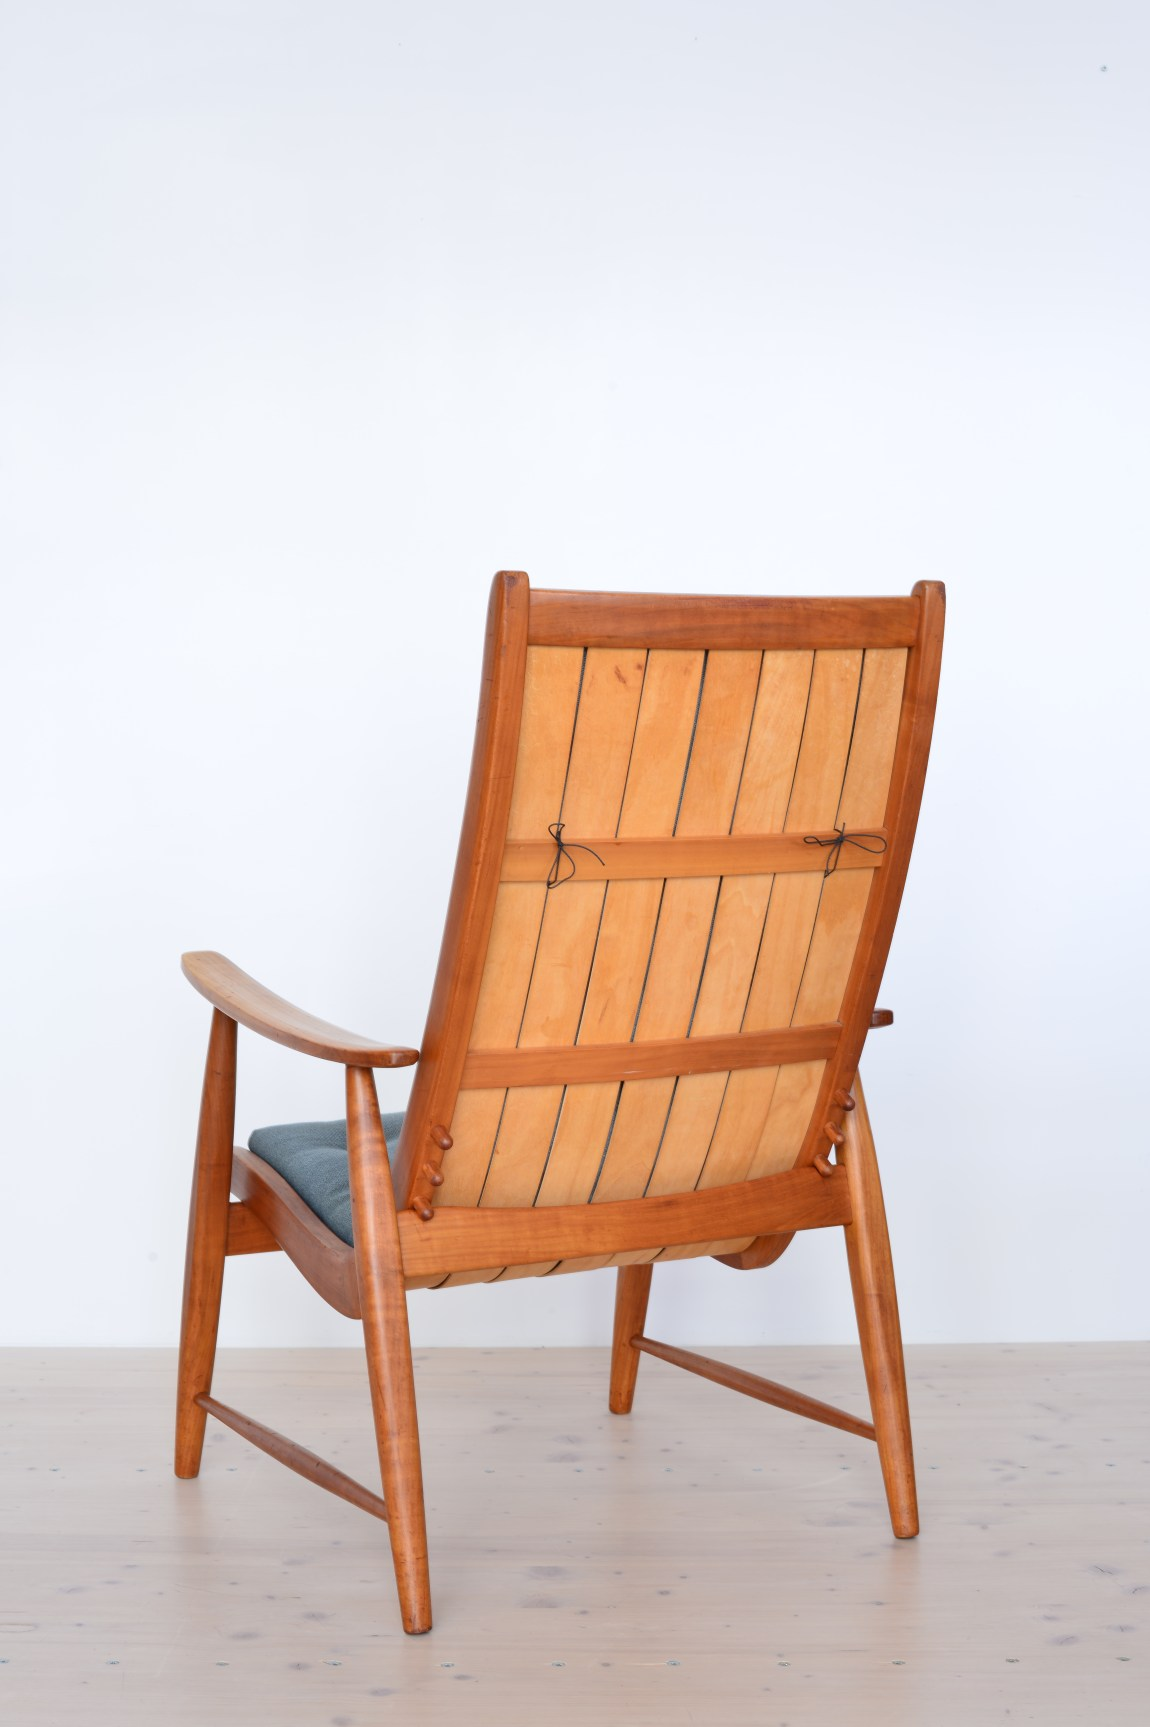 xJacob Muller Ronco Chair Original available at heyday möbel, Grubenstrasse 19, 8045 Zurich, Switzerland